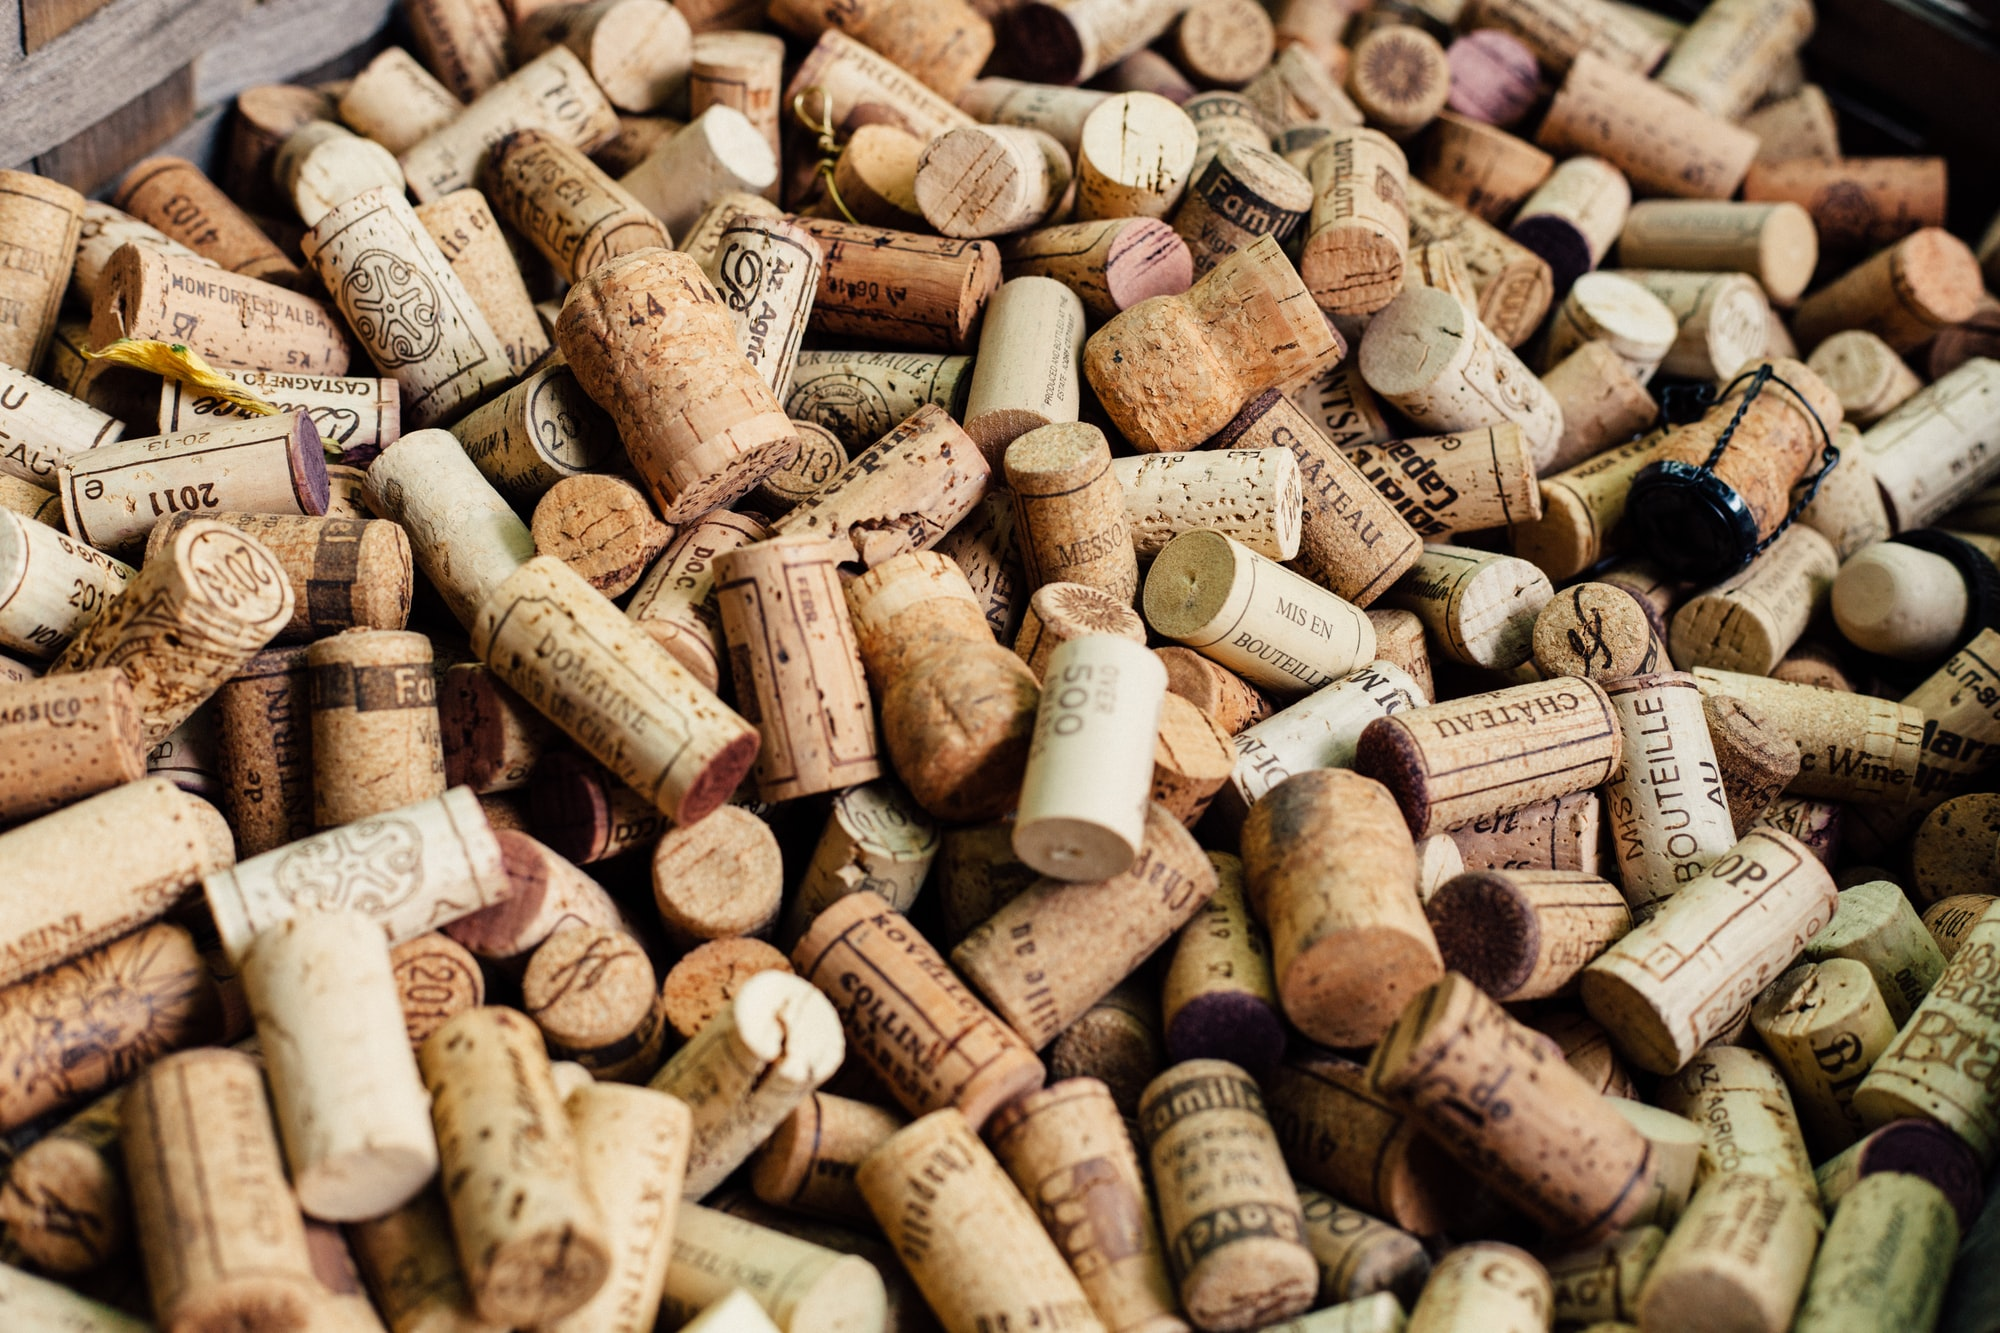 I saw this basket full of wine corks while walking by a restaurant in NYC